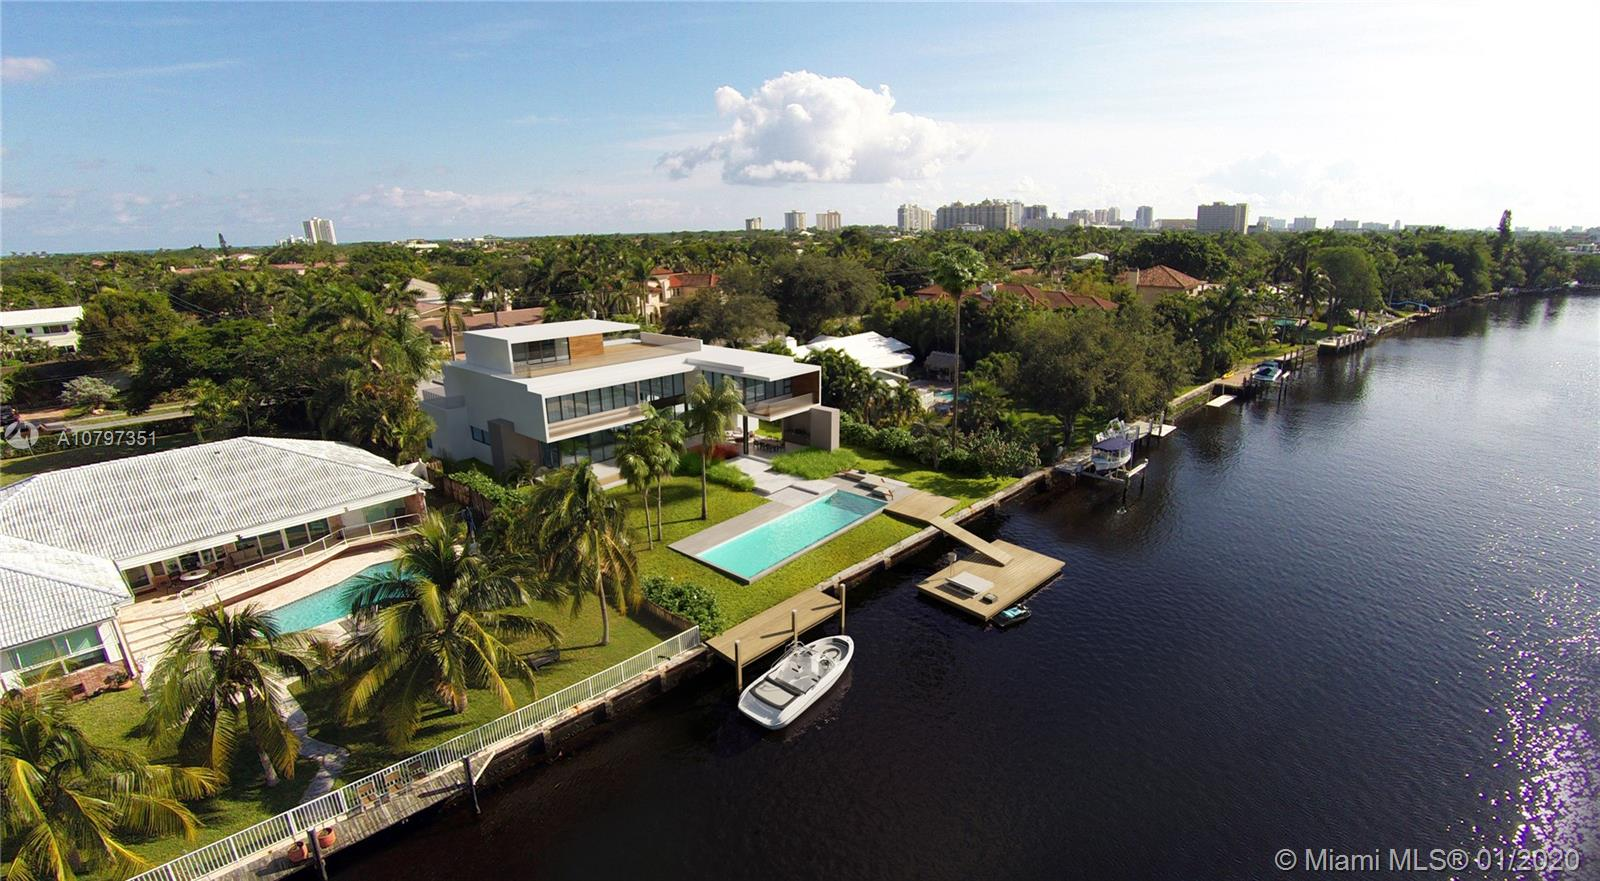 Unique, stunning, modern estate, 100 ft water frontage with panoramic views and dock, over sized infinity pool. 